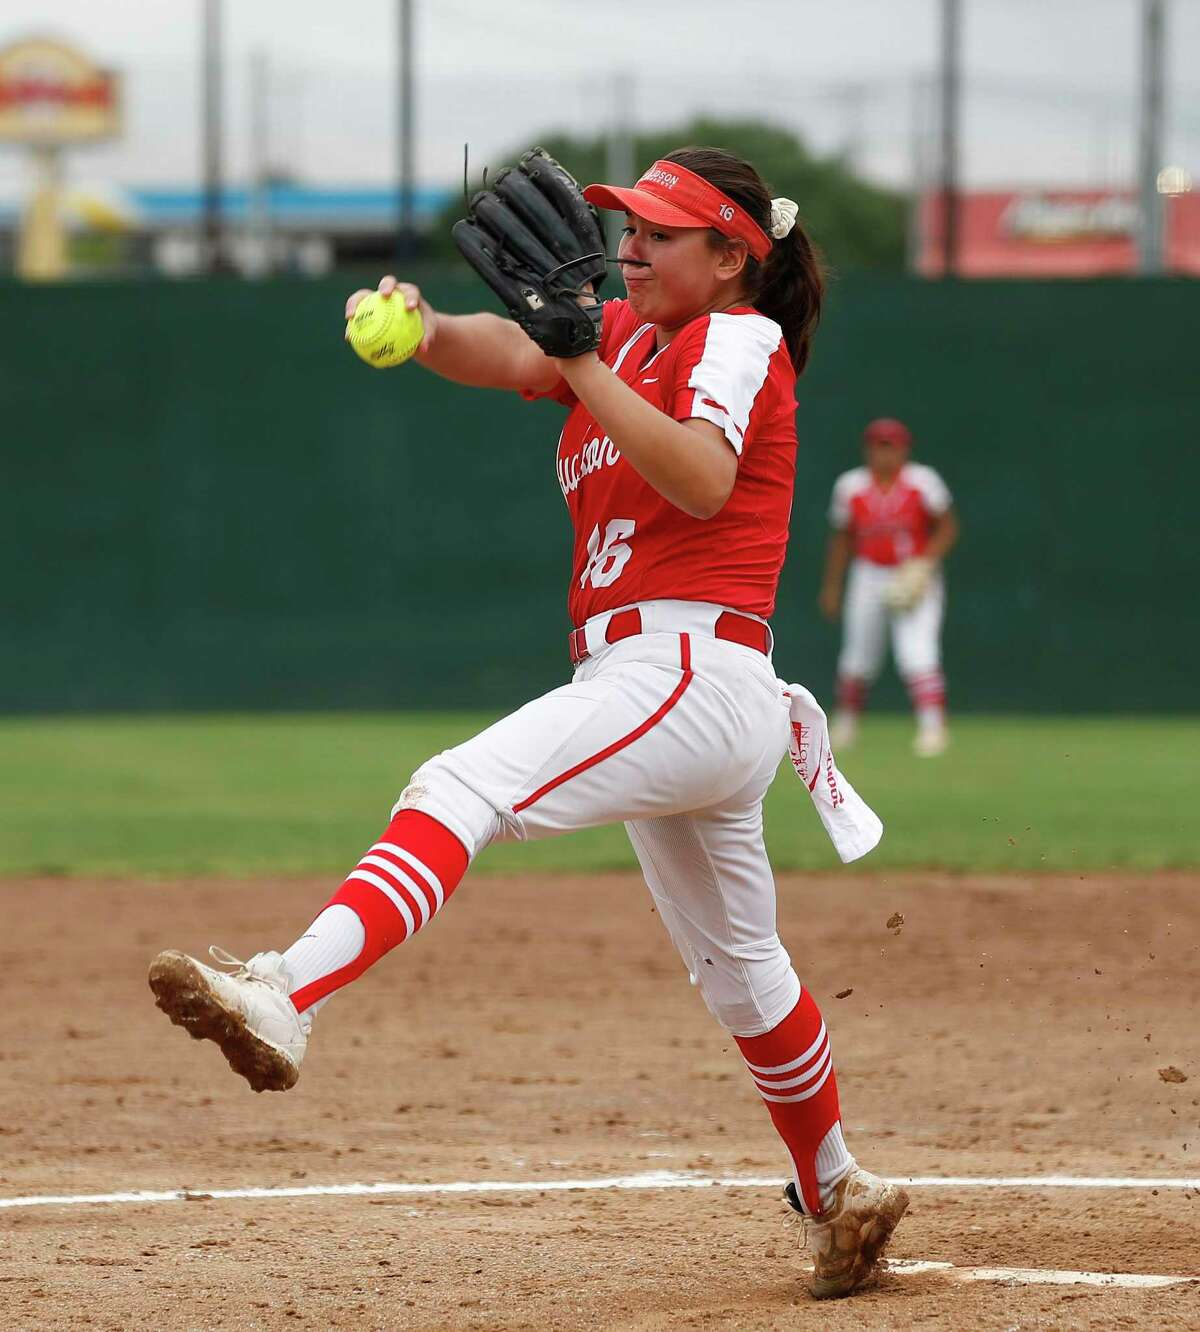 Judson pitcher Emily Ayala delivers a pitch against O'Connor. Game 2 softball regional semifinal Judson vs. O'Connor on 5.22,.2021 at Judson HS